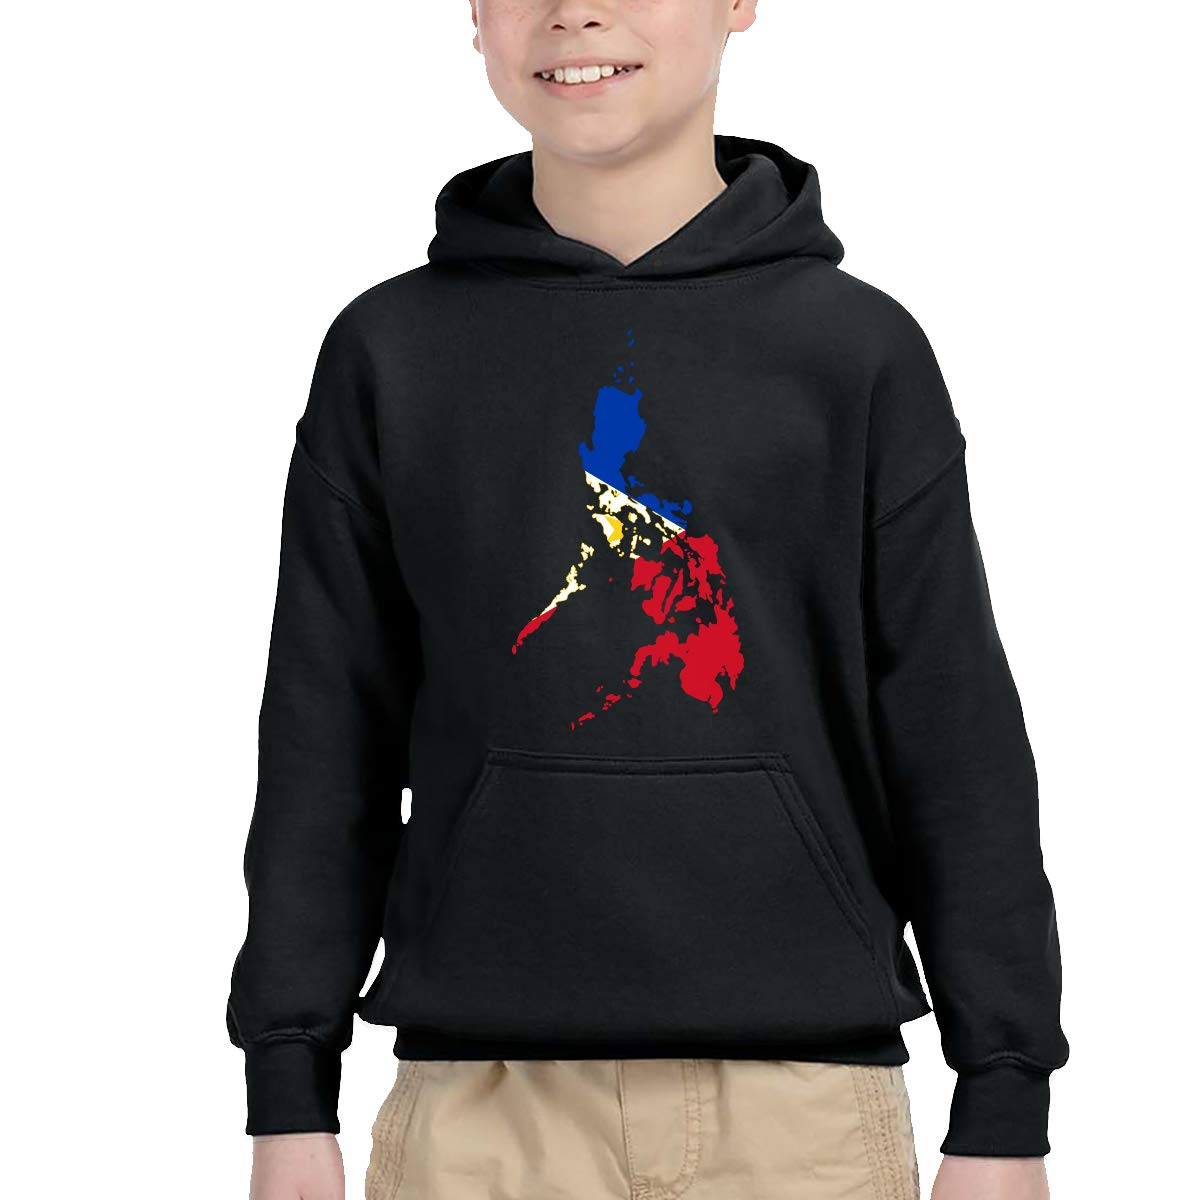 YTH/&123 Kids /& Toddler Pullover Hoodie Fleece Philippine Map Philippines Flag Sweatshirt